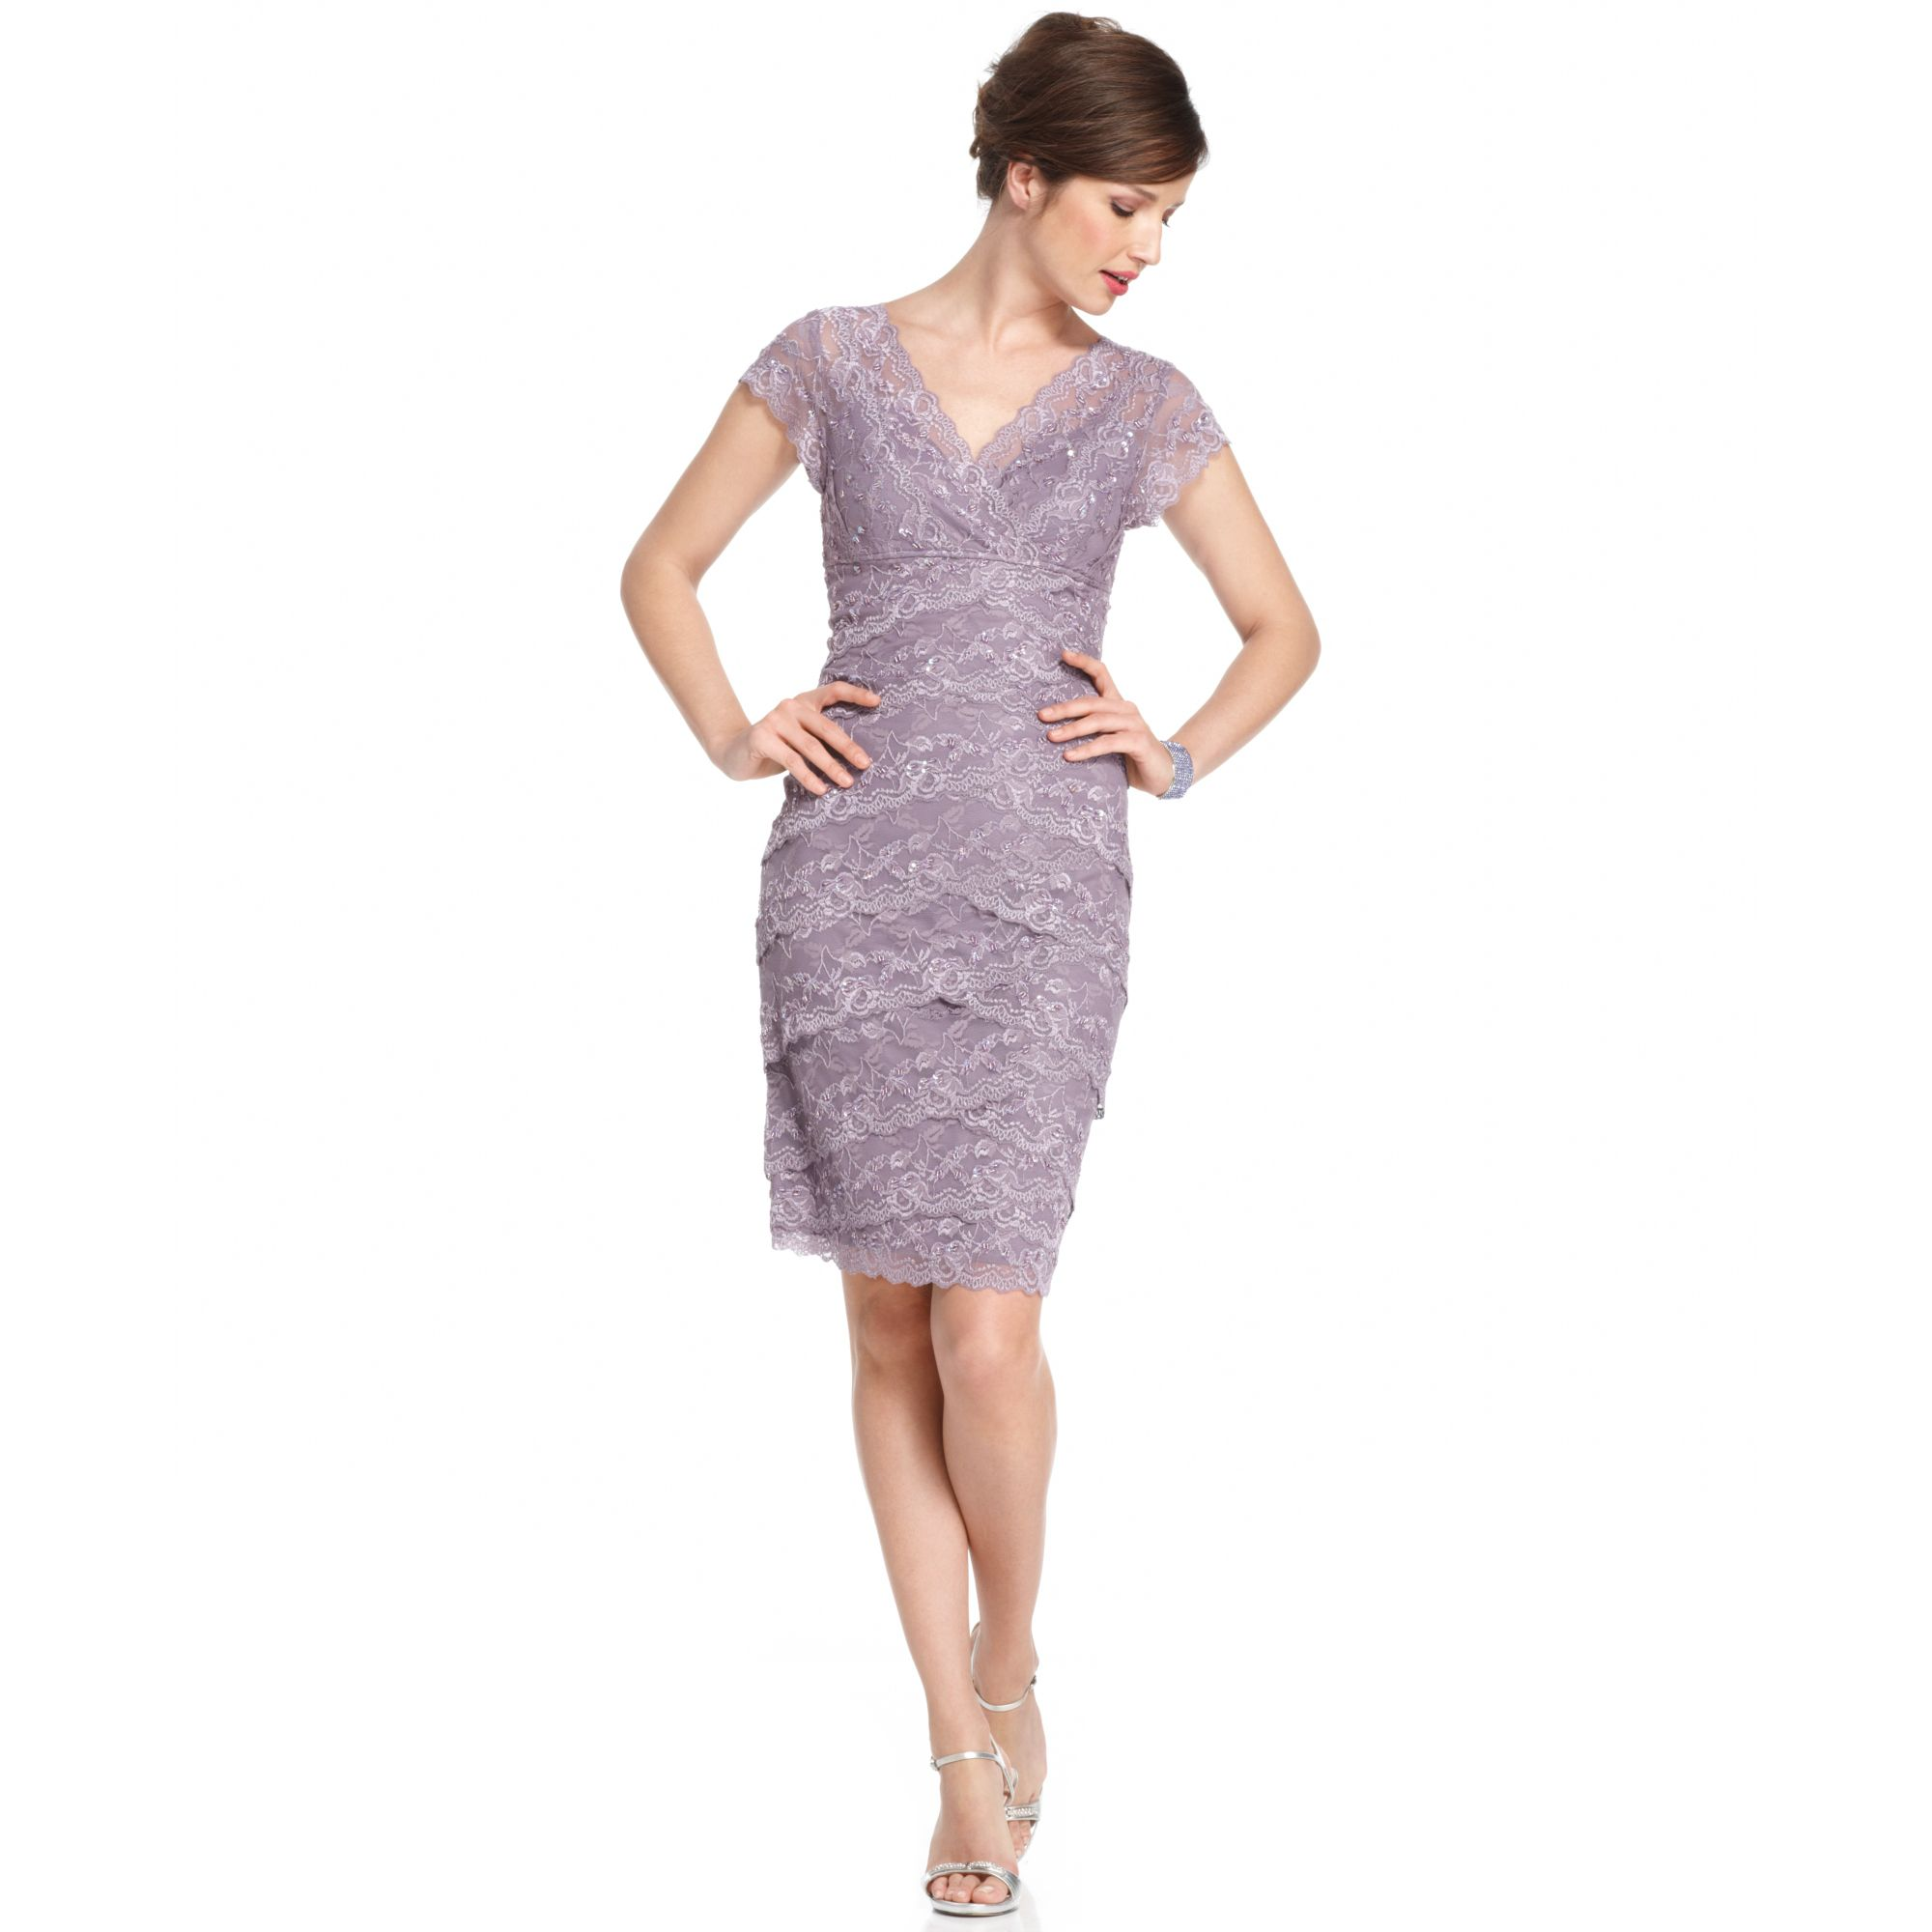 Marina Cap Sleeve Lace Cocktail Dress in Purple | Lyst